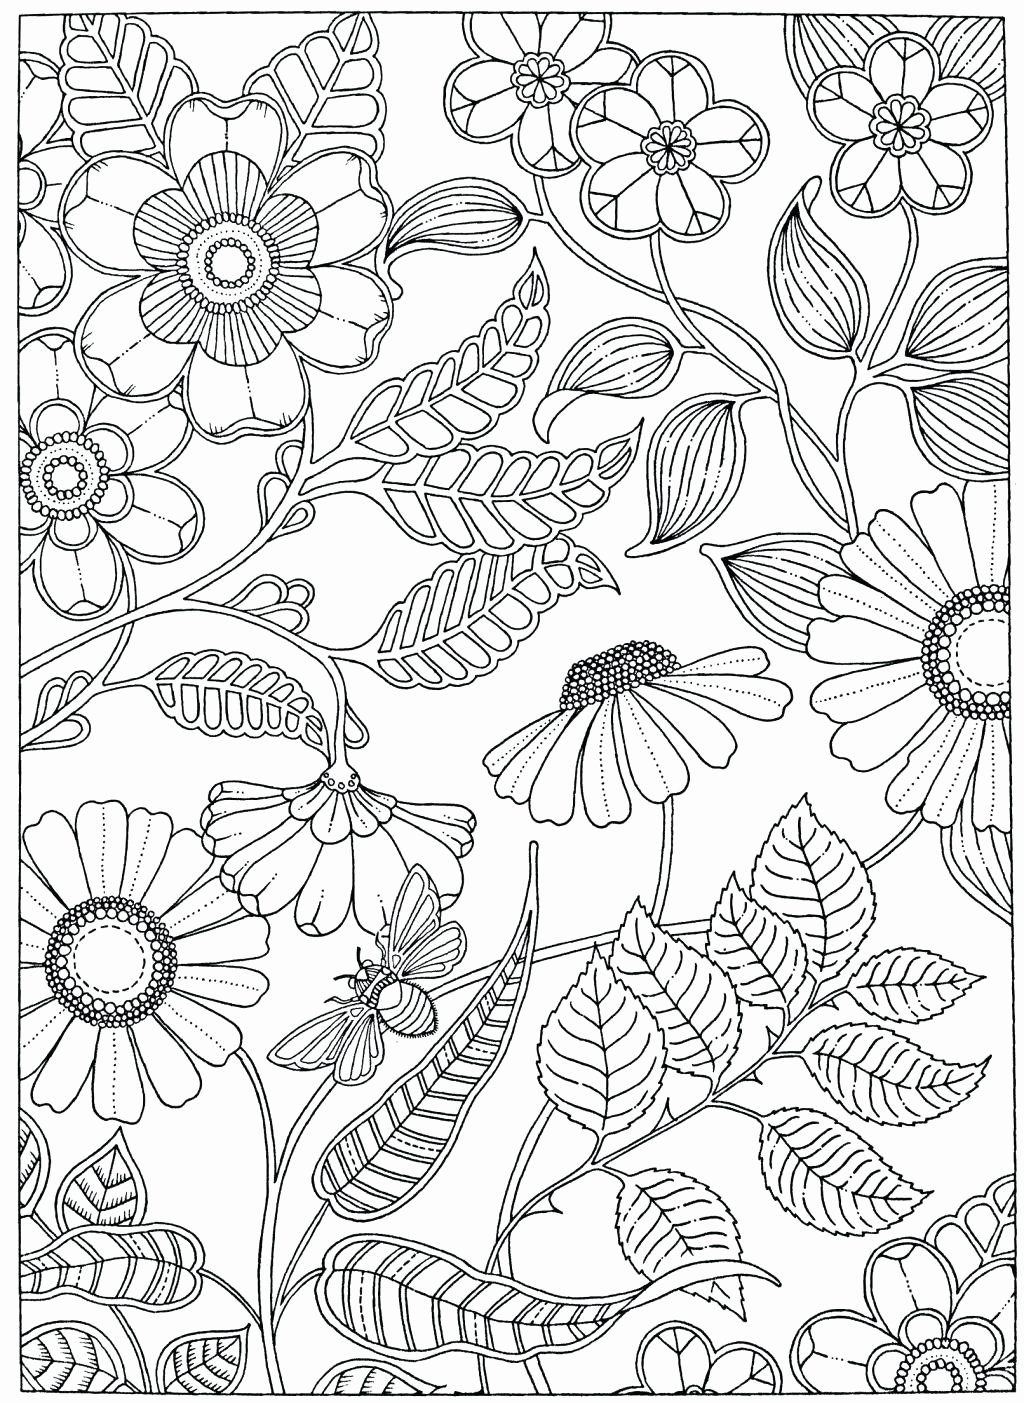 Printable Garden Coloring Pages : printable, garden, coloring, pages, Vegetable, Garden, Coloring, Sheet, Fresh, Printable, Pages, Allenfines…, Pages,, Flower, Secret